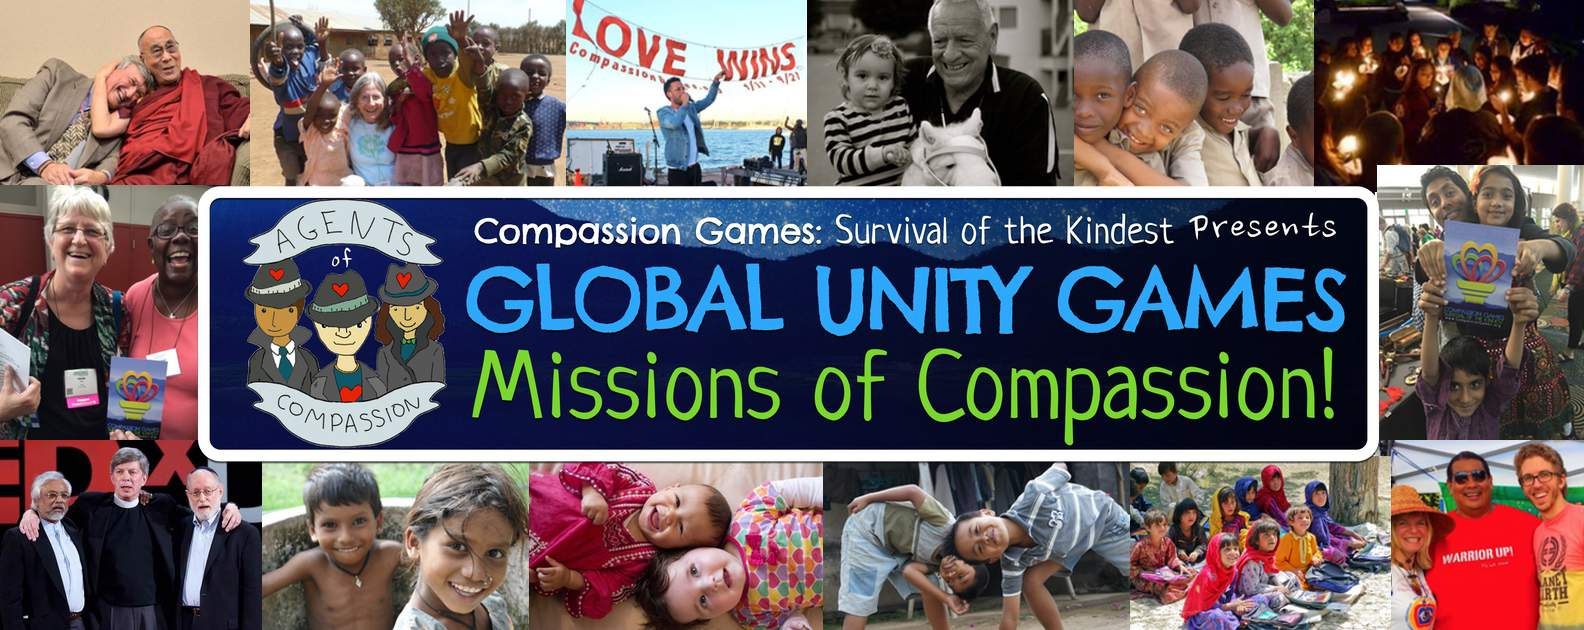 Global Unity Games Banner